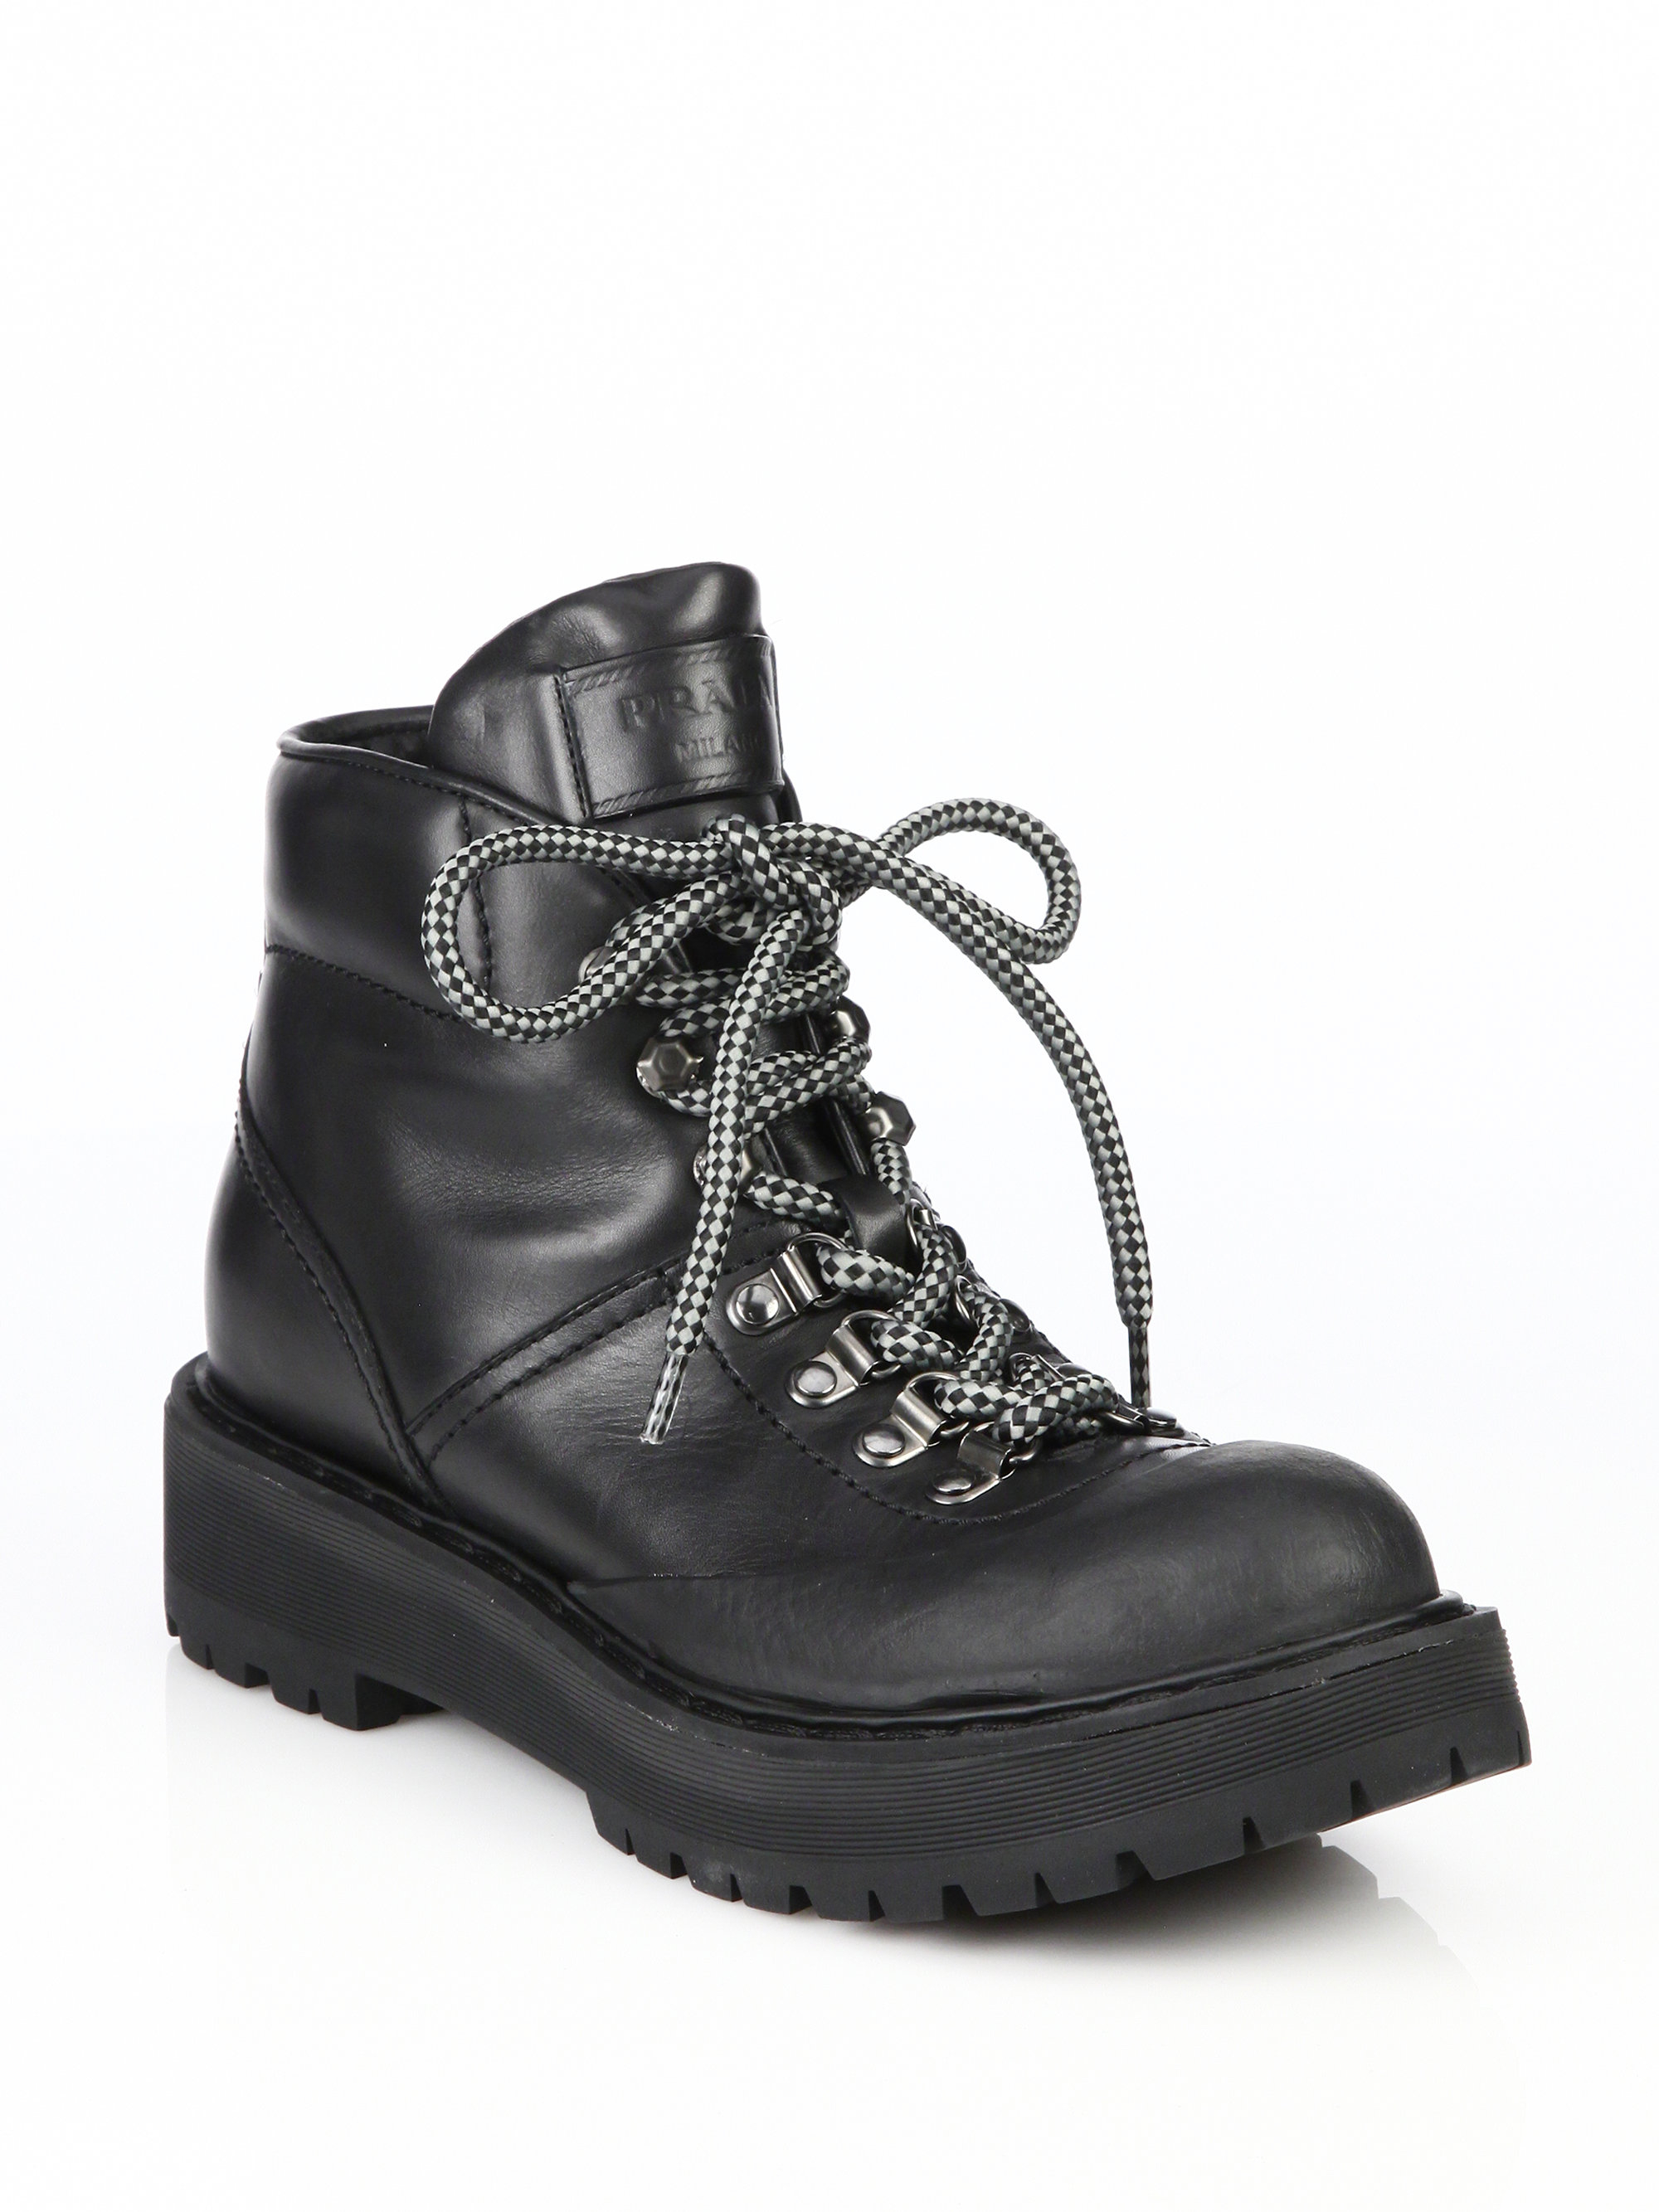 Prada Leather Lace Up Hiking Boots In Black For Men Lyst